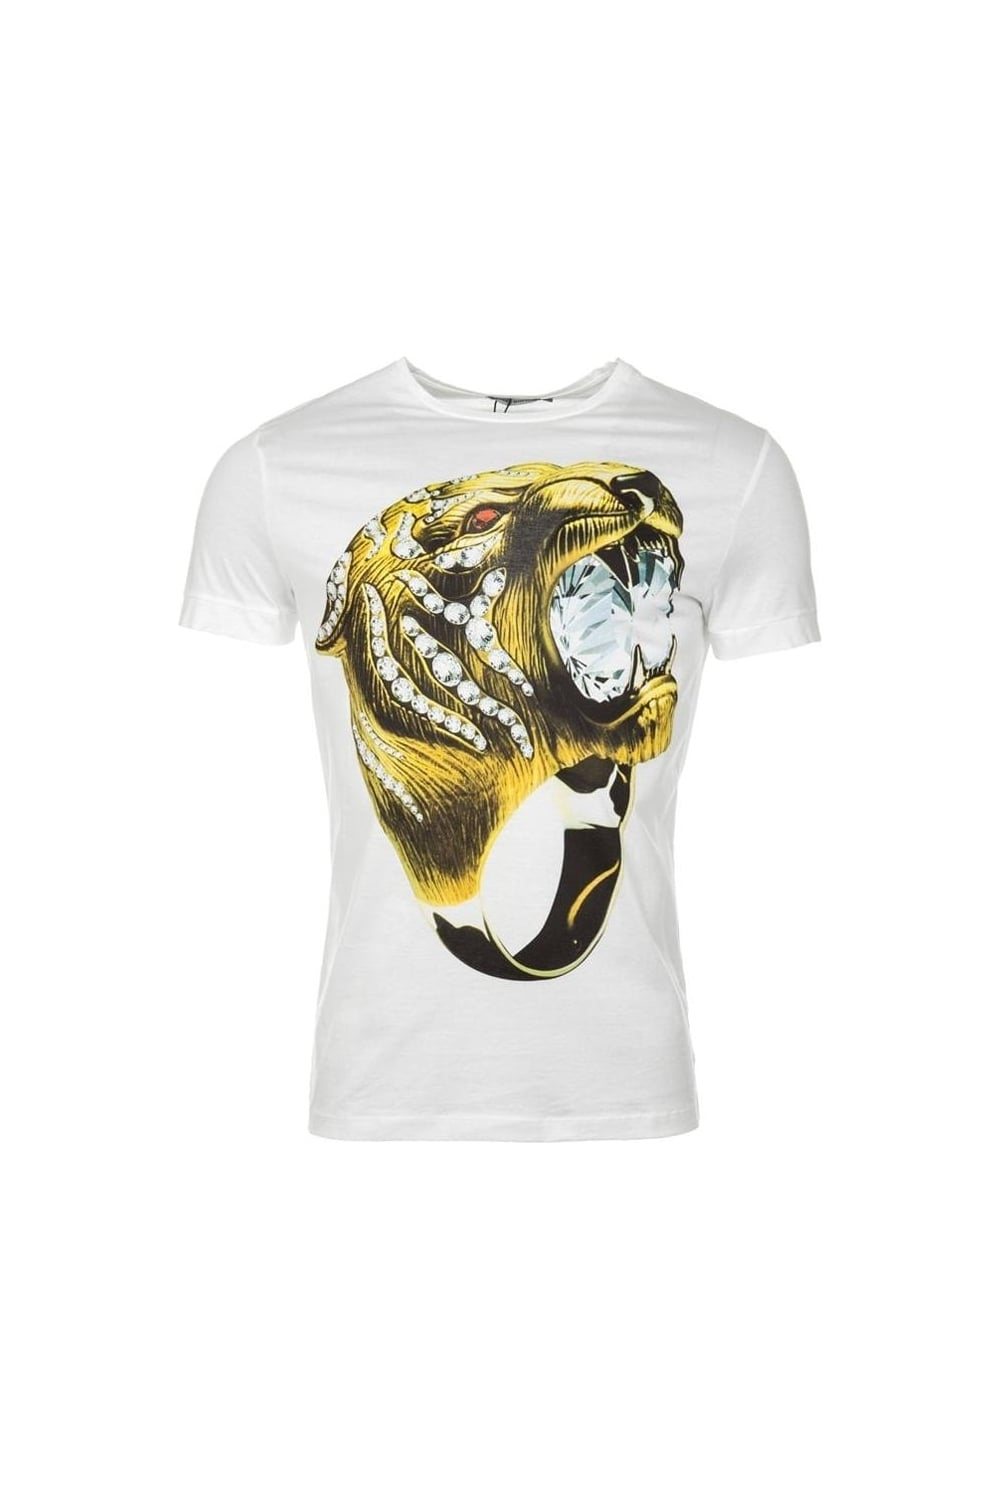 11d0502b Antony Morato | Tiger Ring Crew Neck T-Shirt White | Intro Clothing